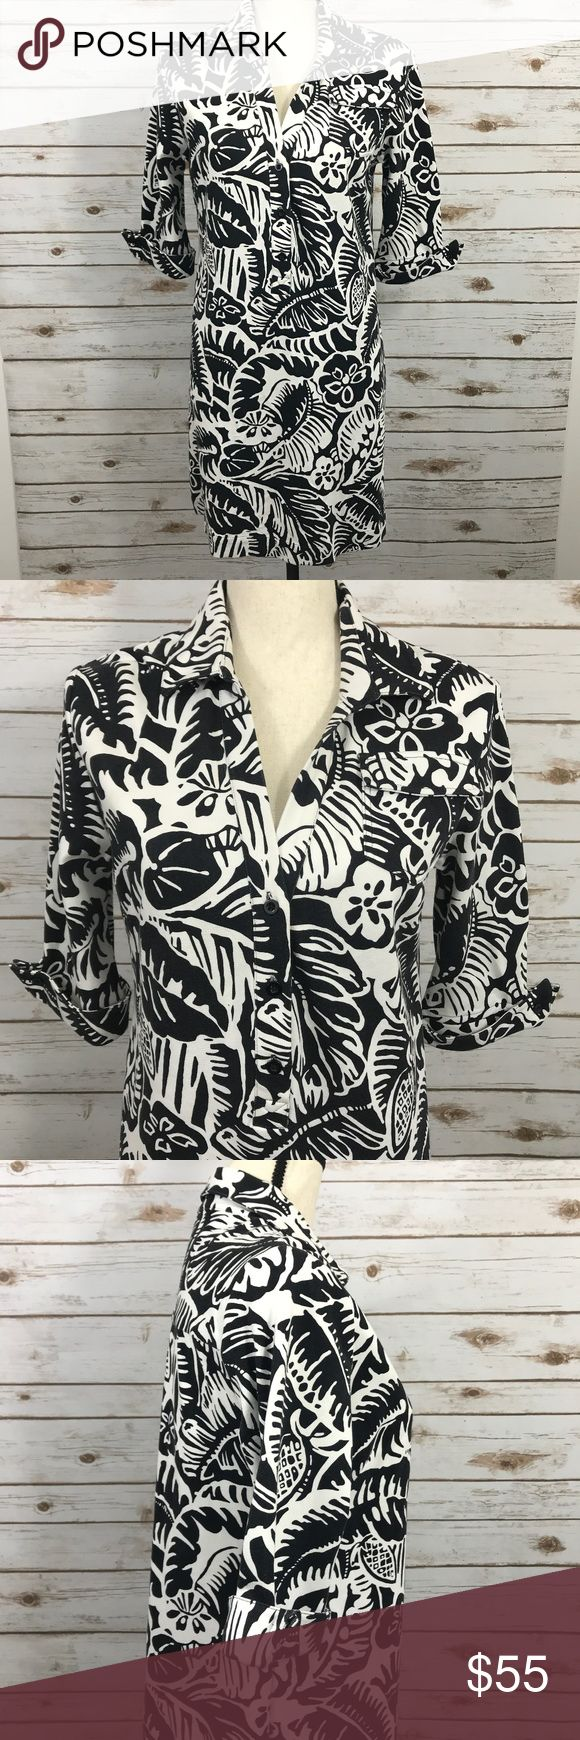 Tori Richards Honolulu Shirt Dress Hawaiian 6 Tori Richards Honolulu Shirt Dress Button Down, Half way  Size 6   Measures  Chest: 18 1/2 inches from armpit to armpit laying flat Length: 34 inches long from top of shoulder to hemline  Material : 80% rayon, 16% nylon, 4% spandex  / Heavy Material Like a jersey knit.  DRY CLEAN ONLY  Thank you for looking, please check out the rest of my closet and send me an offer! Tori Richards Dresses